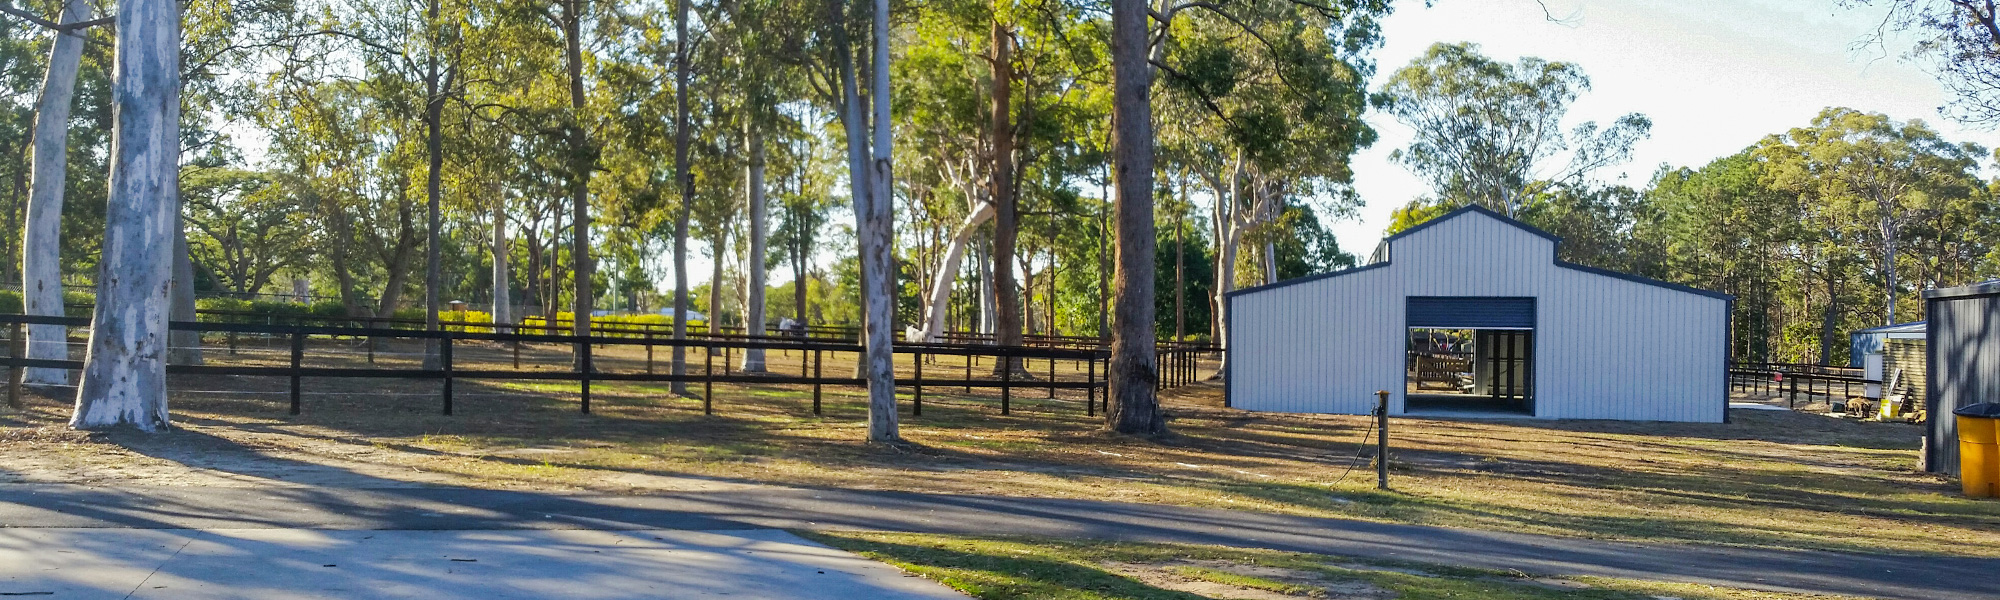 Equine Sheds & Covers